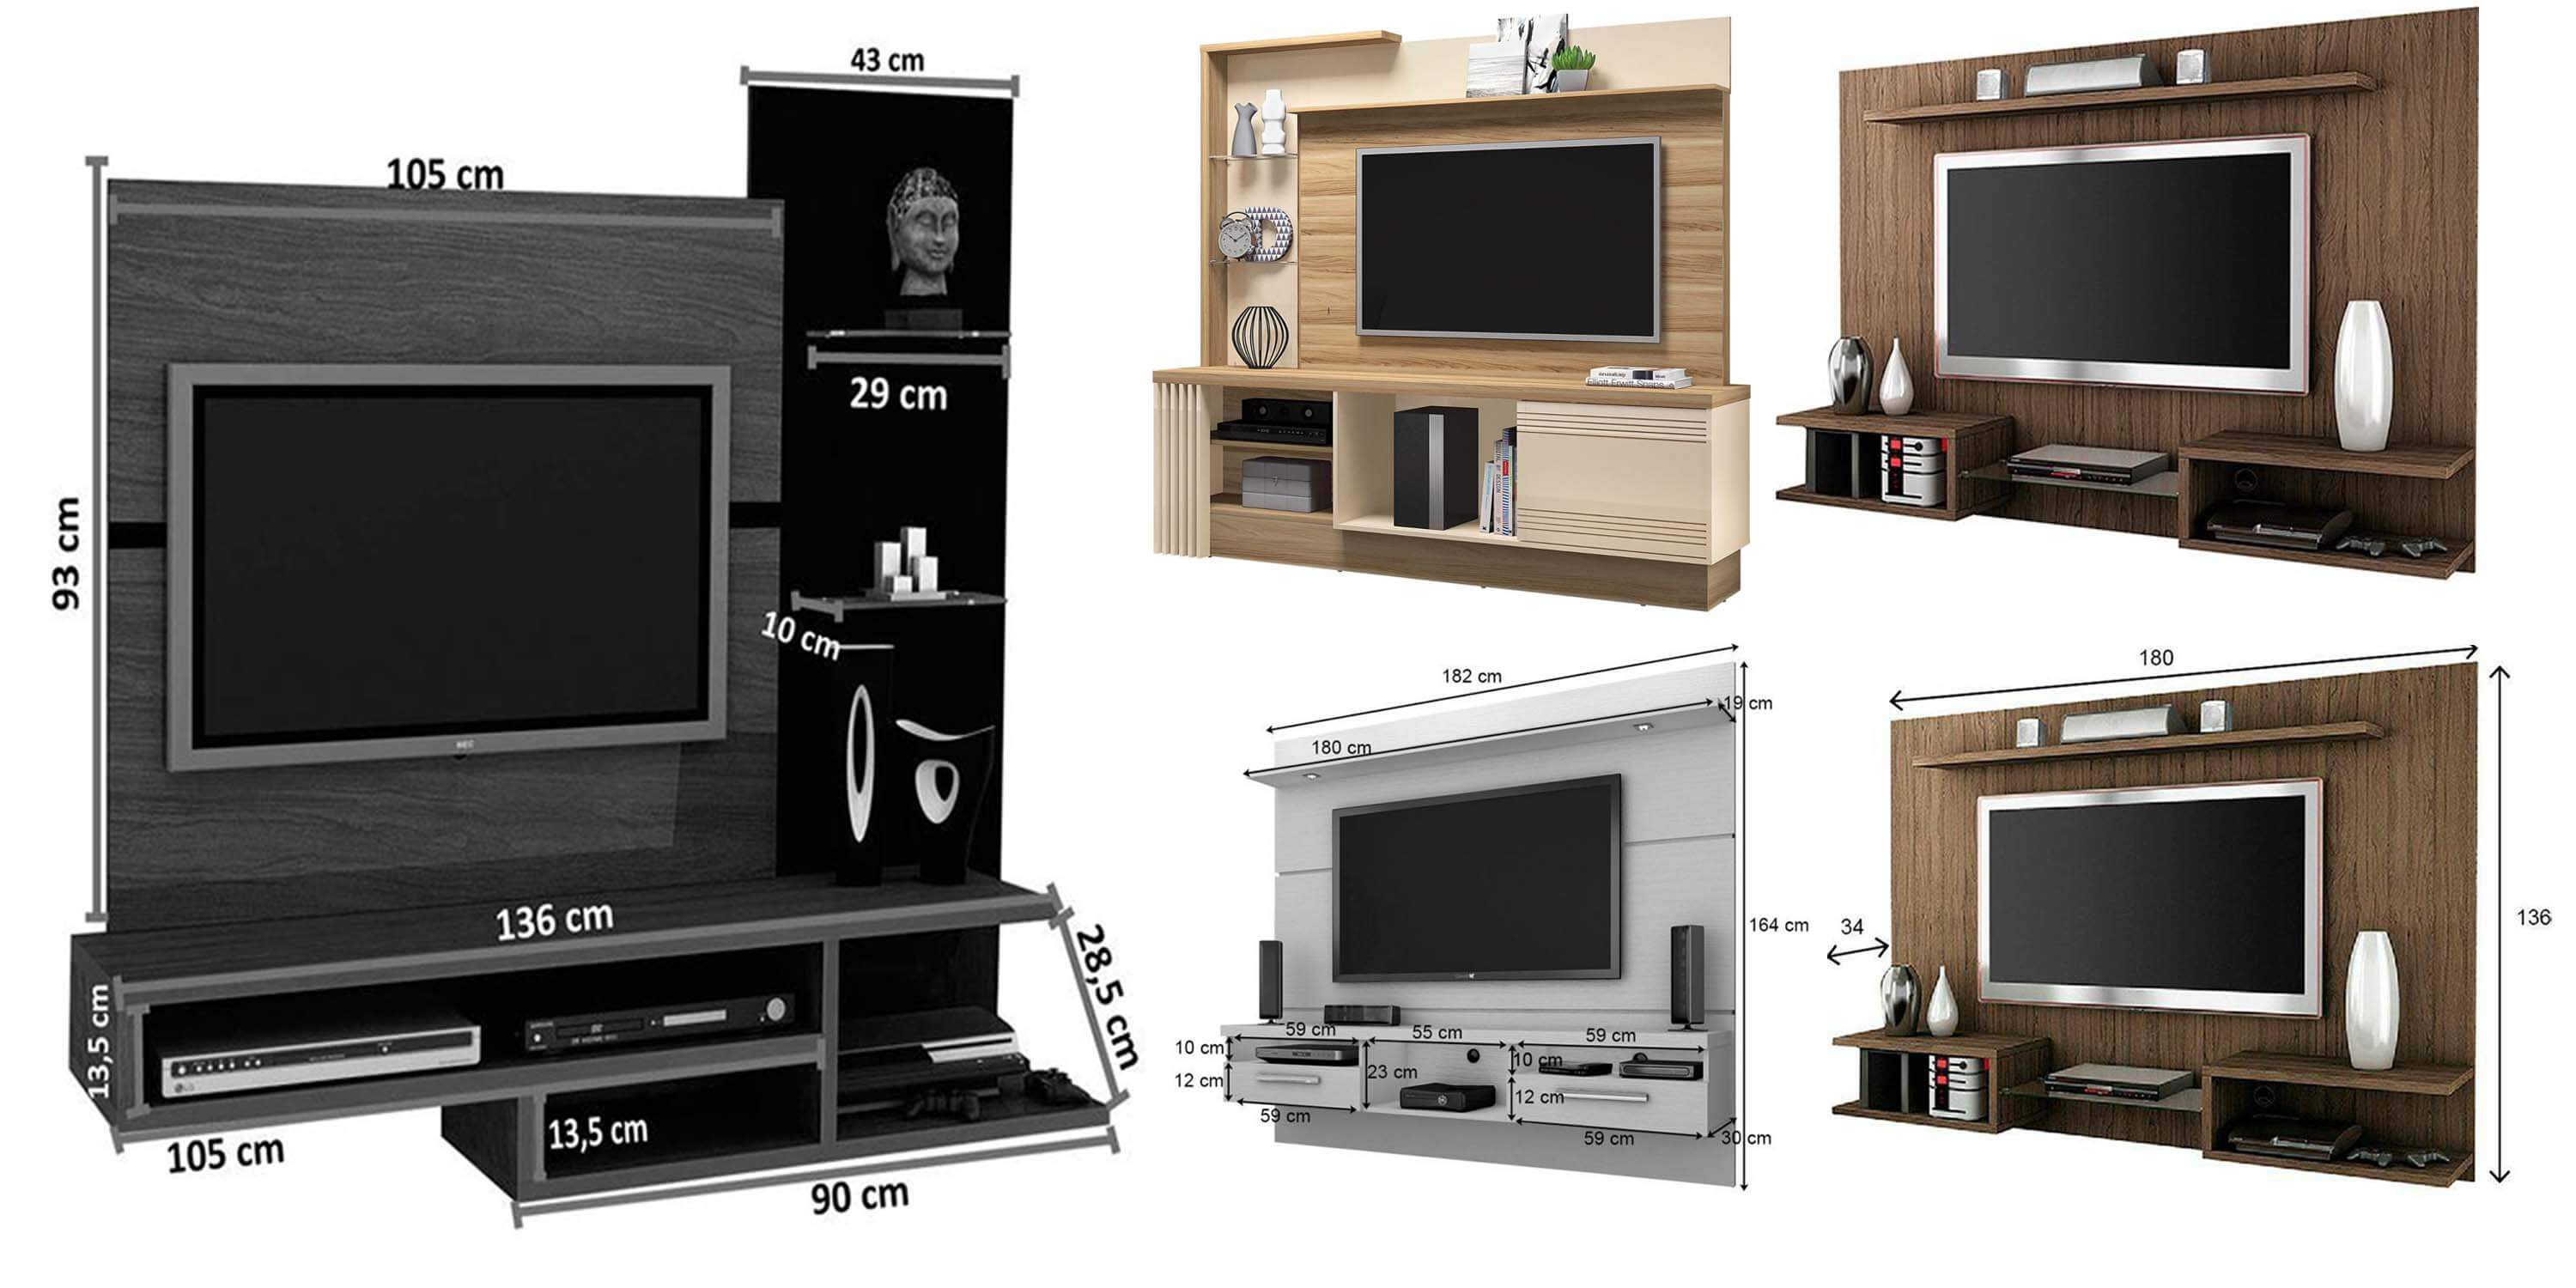 Design Tv Rack Cool Tv Rack With Tv Rack With Design Tv Rack 40 Cool Tv Stand Dimension And Designs For Your Home Engineering